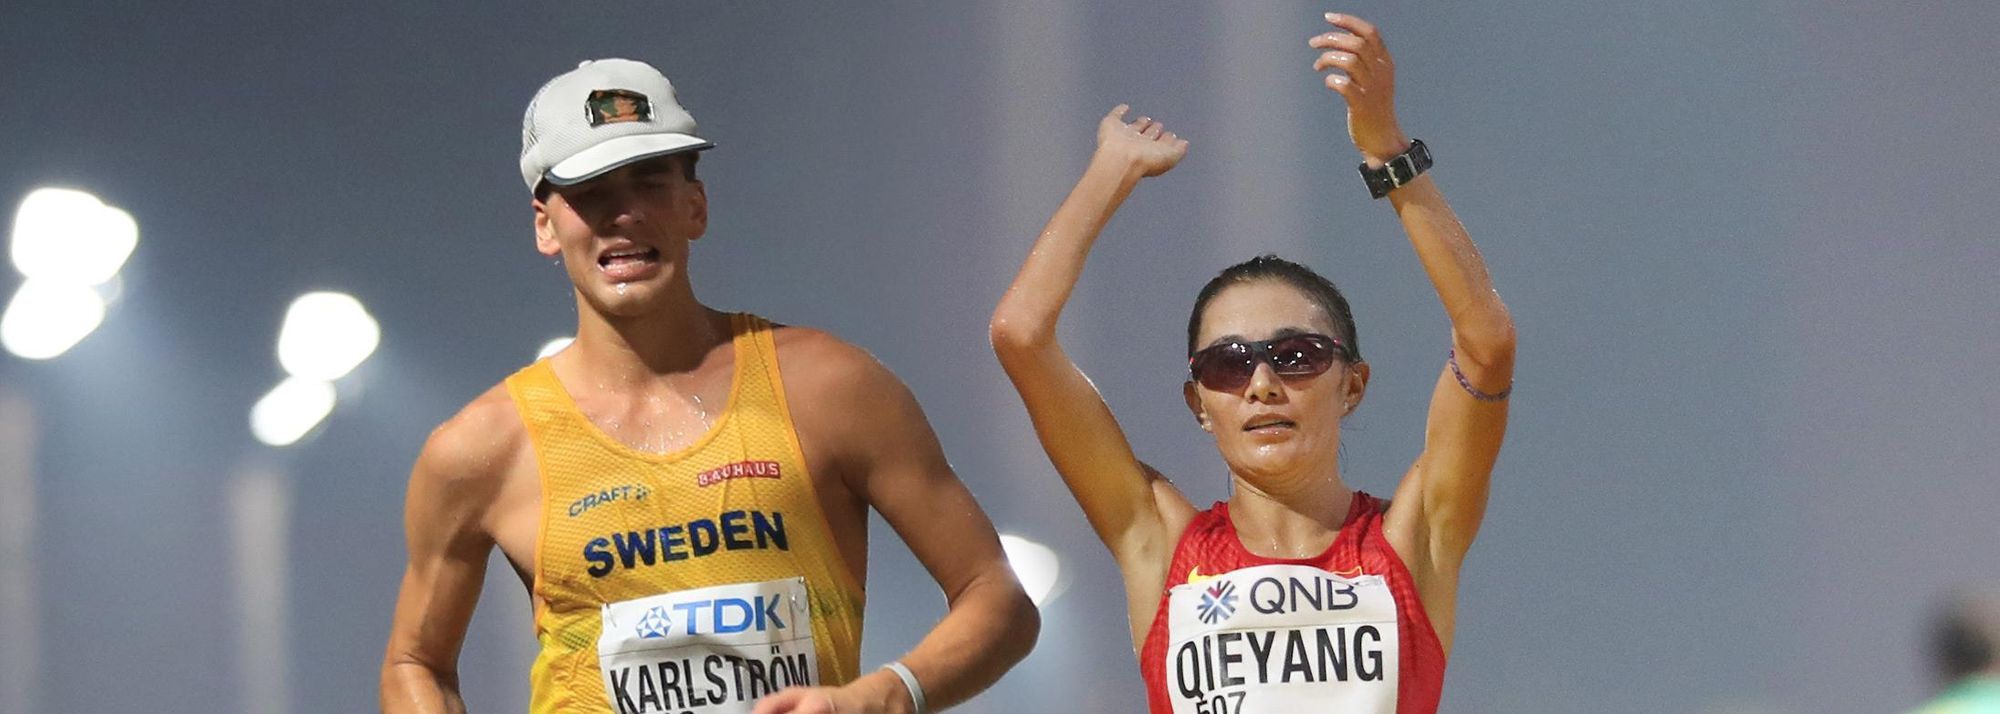 Sweden's Perseus Karlstrom and China's Qieyang Shenjie have been confirmed as the overall winners in the 2019 IAAF Race Walking Challenge.